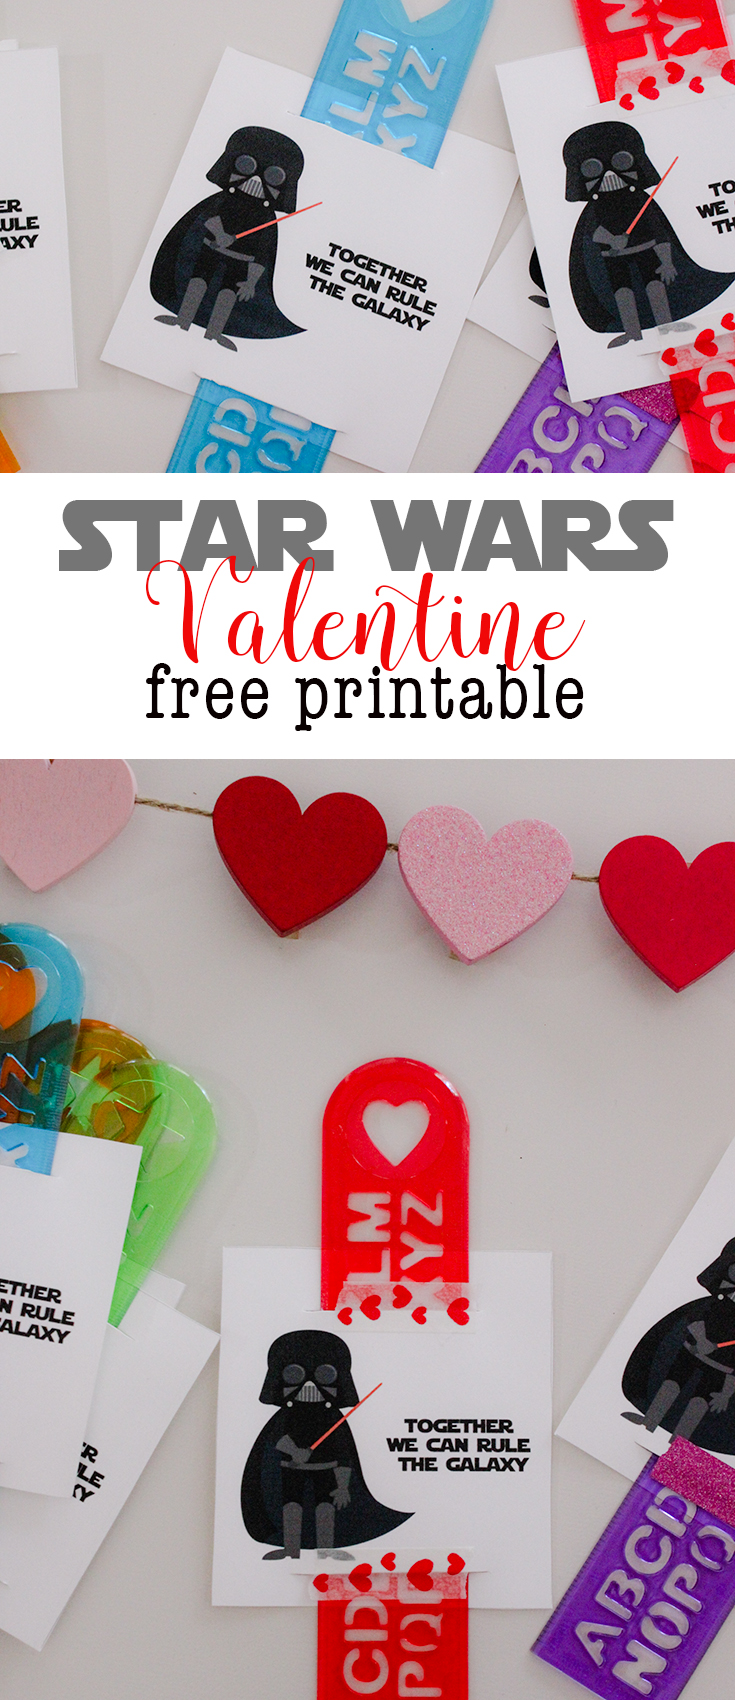 Print your own awesome Darth Vader Valentines for Valentine's Day. Star Wars Valentines are the way to go!